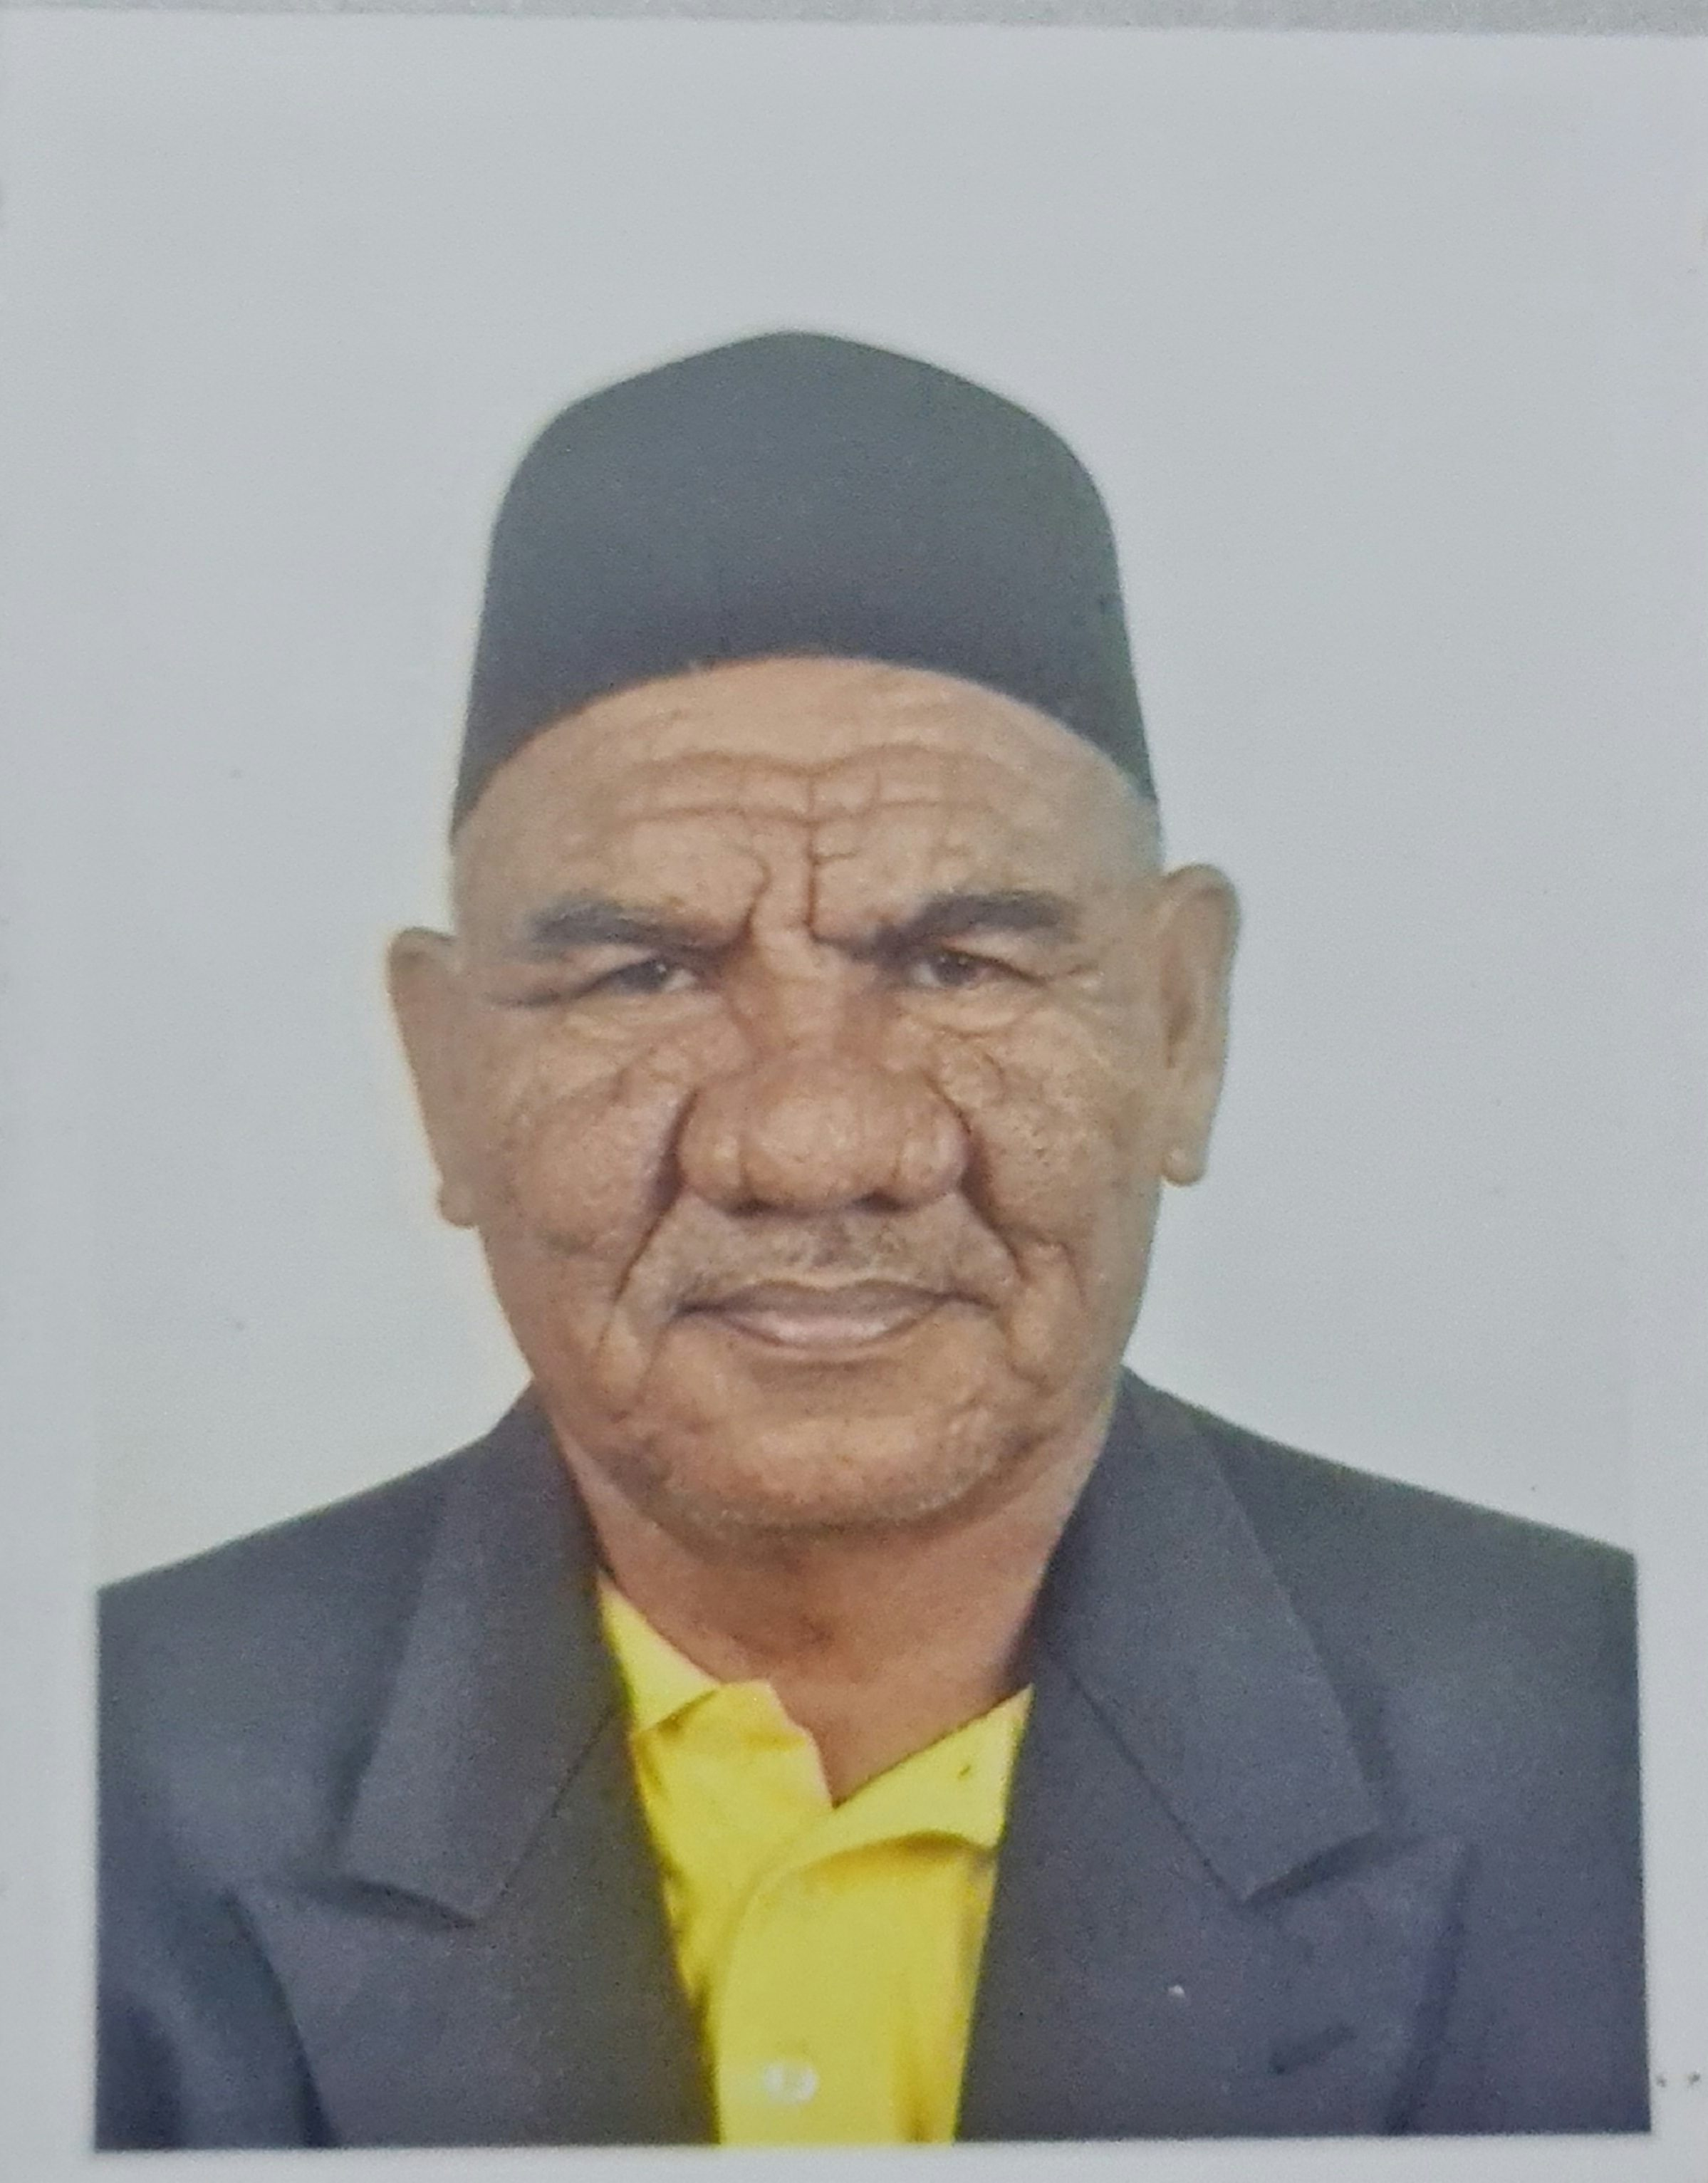 Passport image of Jalaluddin Bin Mohd Jamin. He is wearing songkok and a blazer. He has a wrinkled face, bushy eyebrows and a bulbous nose. He is smiling slightly.